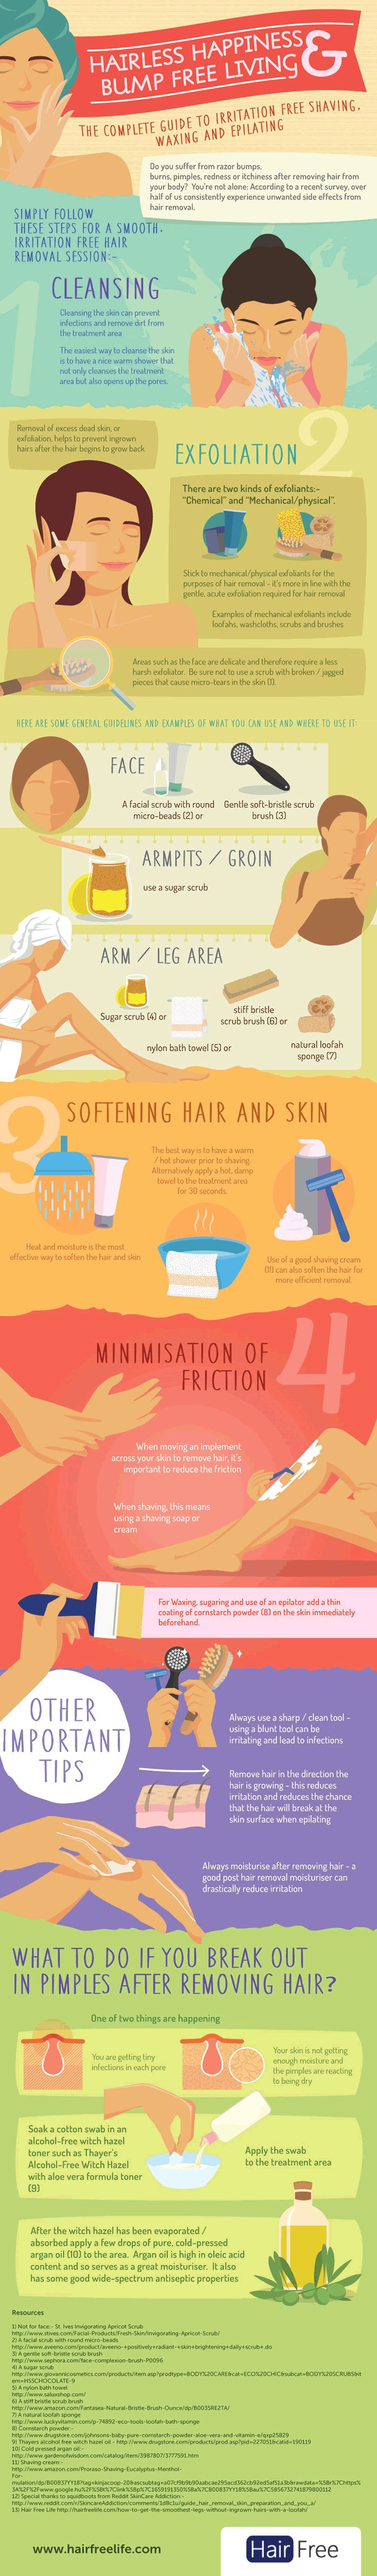 Irritation Free Shaving, Waxing and Epilating: The Complete Guide  [by Hair Free Life -- via #tipsographic]. More at tipsographic.com